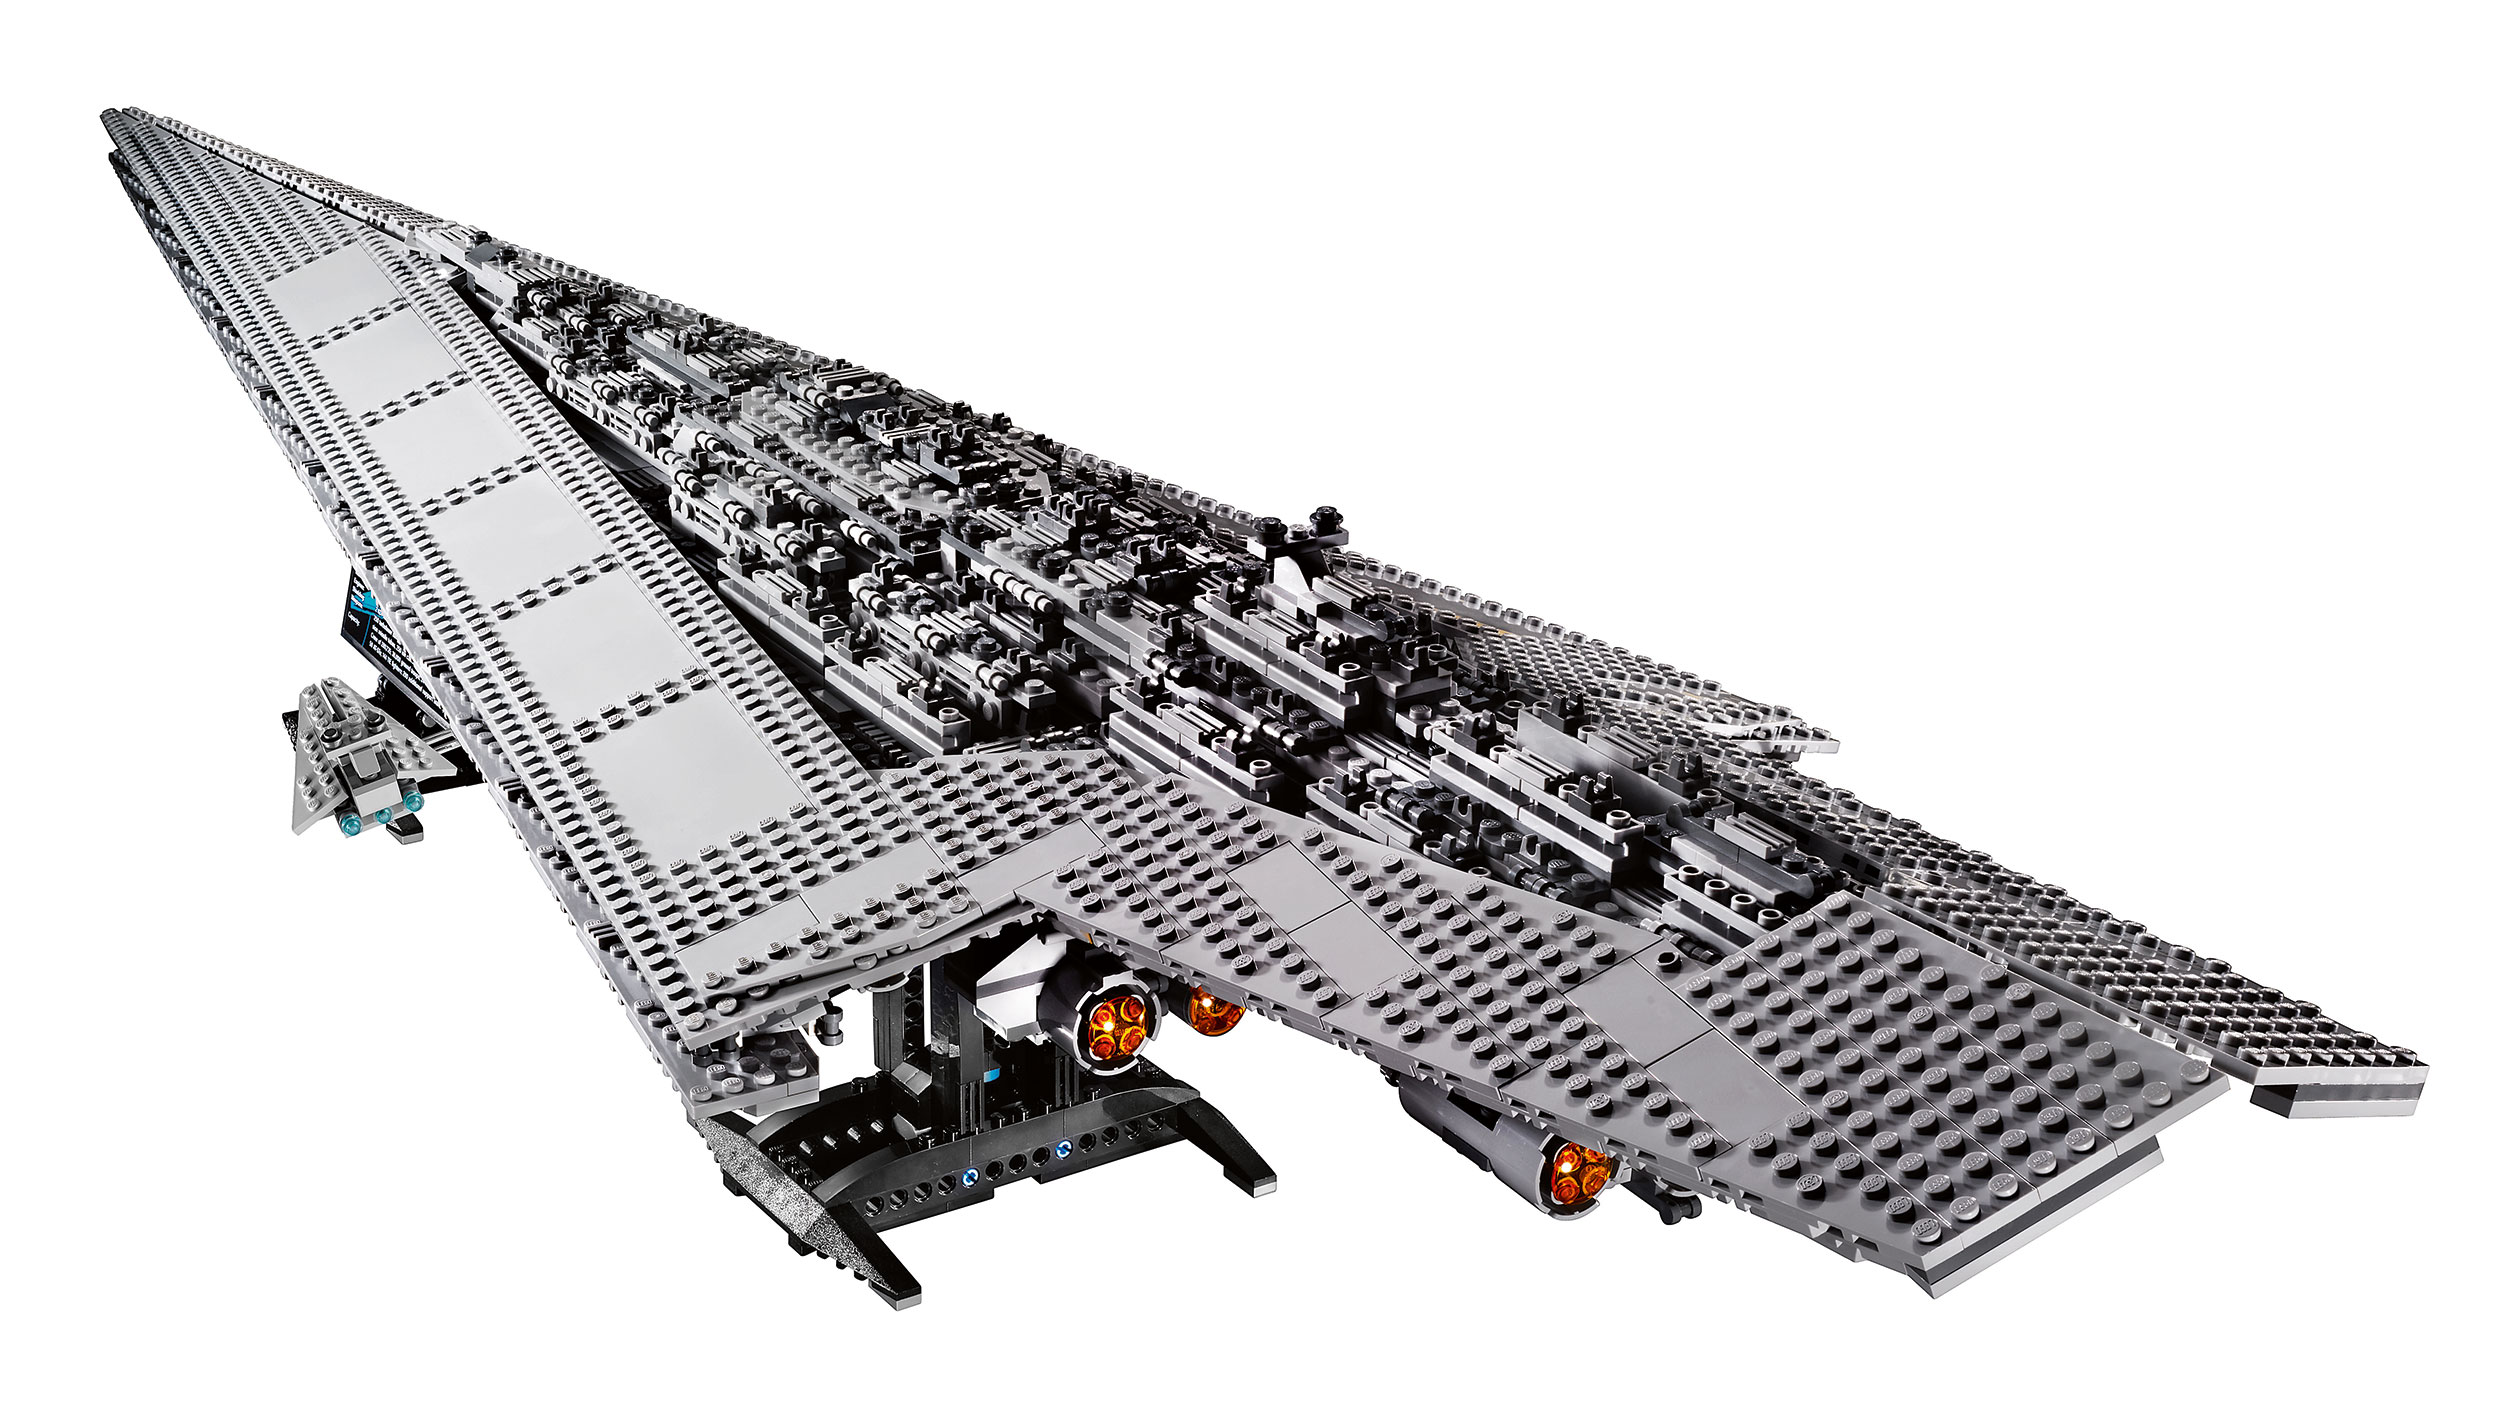 lego star destroyer - photo #26